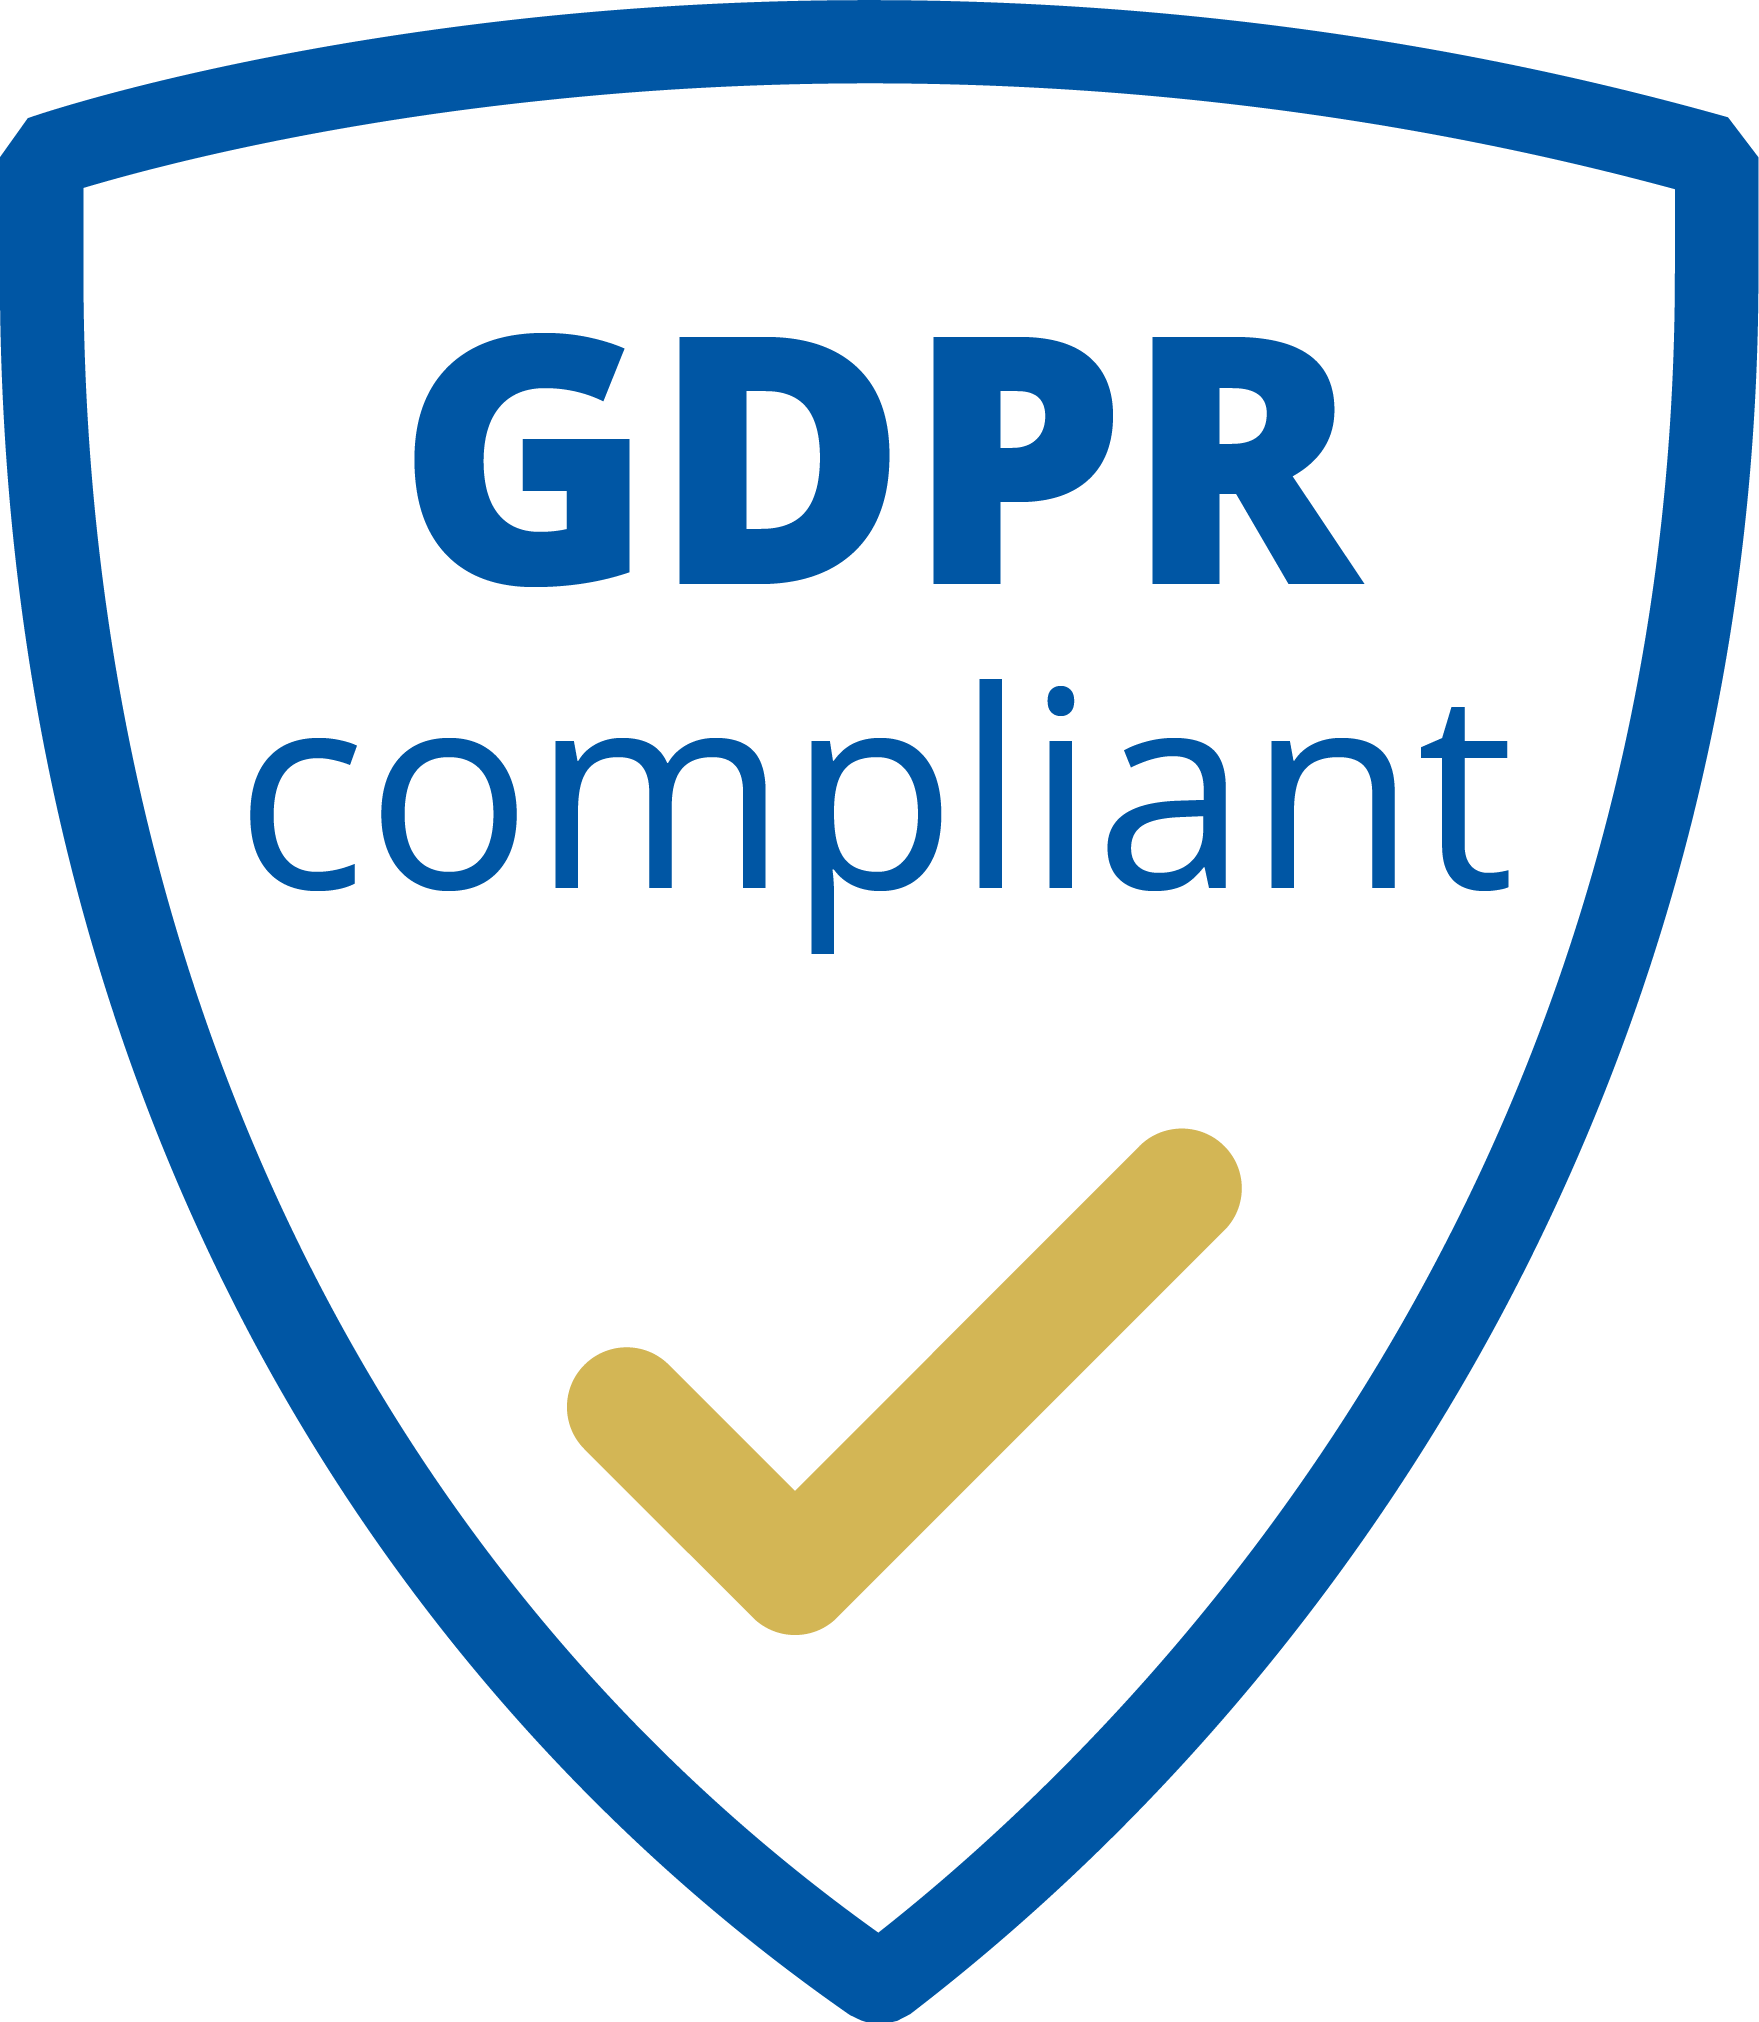 The logo stands for the GDPR-compliant work of IT-Seal.